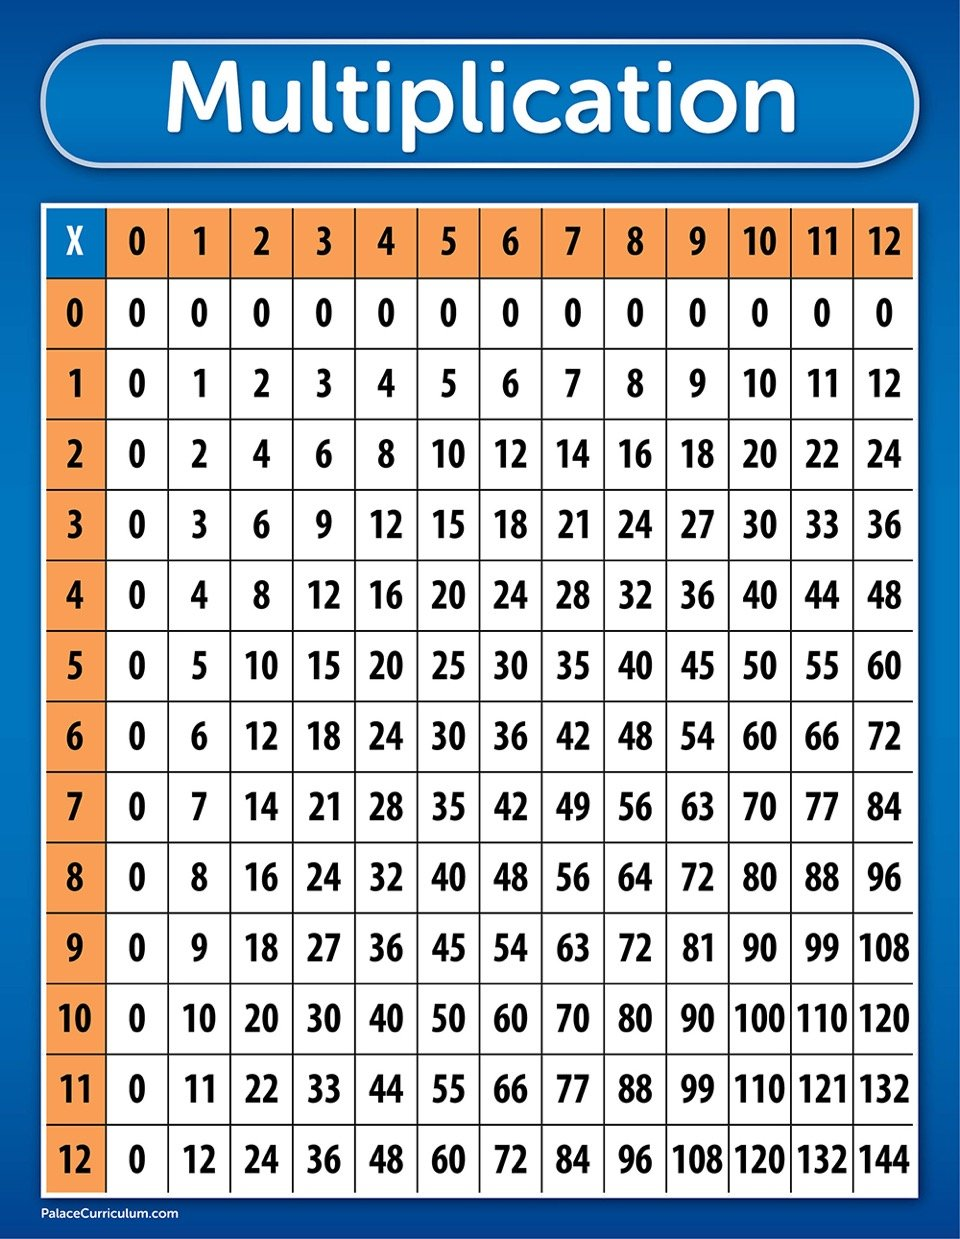 worksheet Times Table Chart amazon com multiplication table chart poster laminated 17 x 22 office products